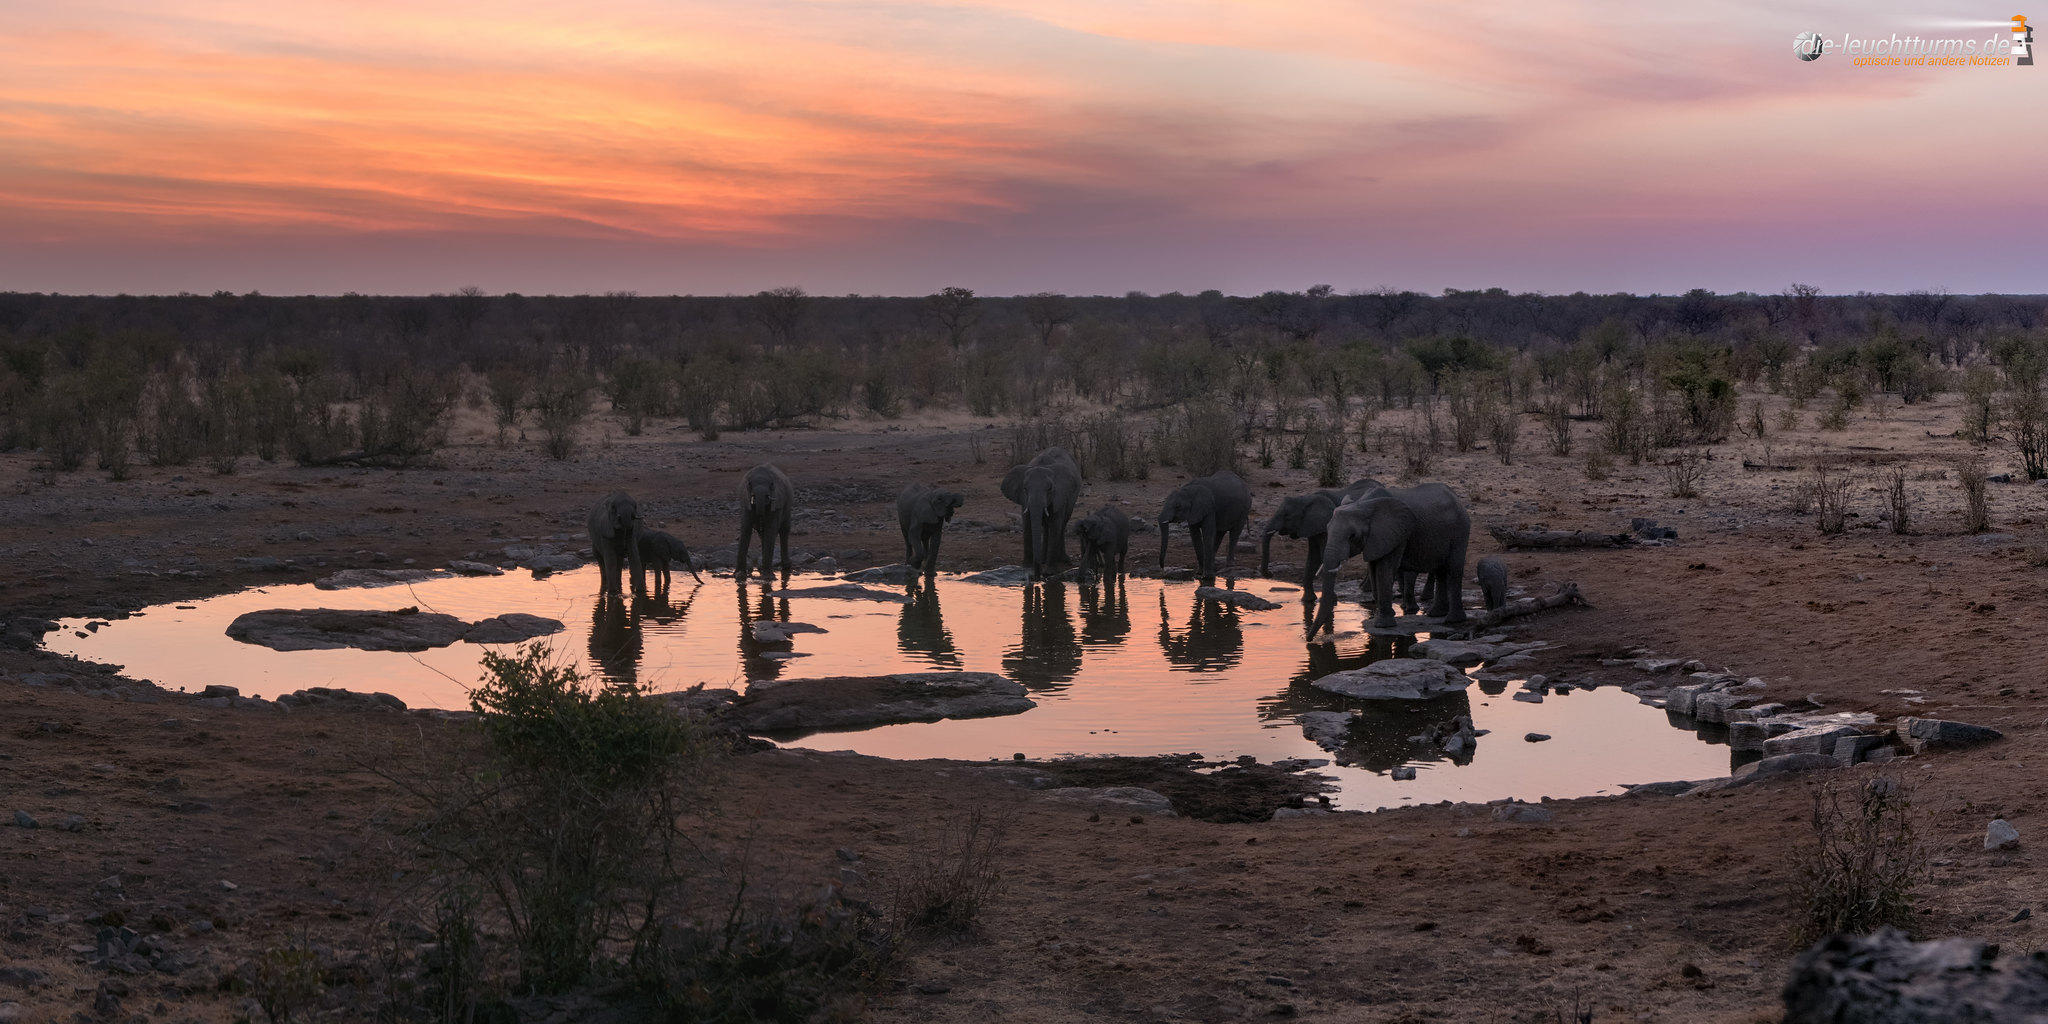 In the evening at the Moringa waterhole